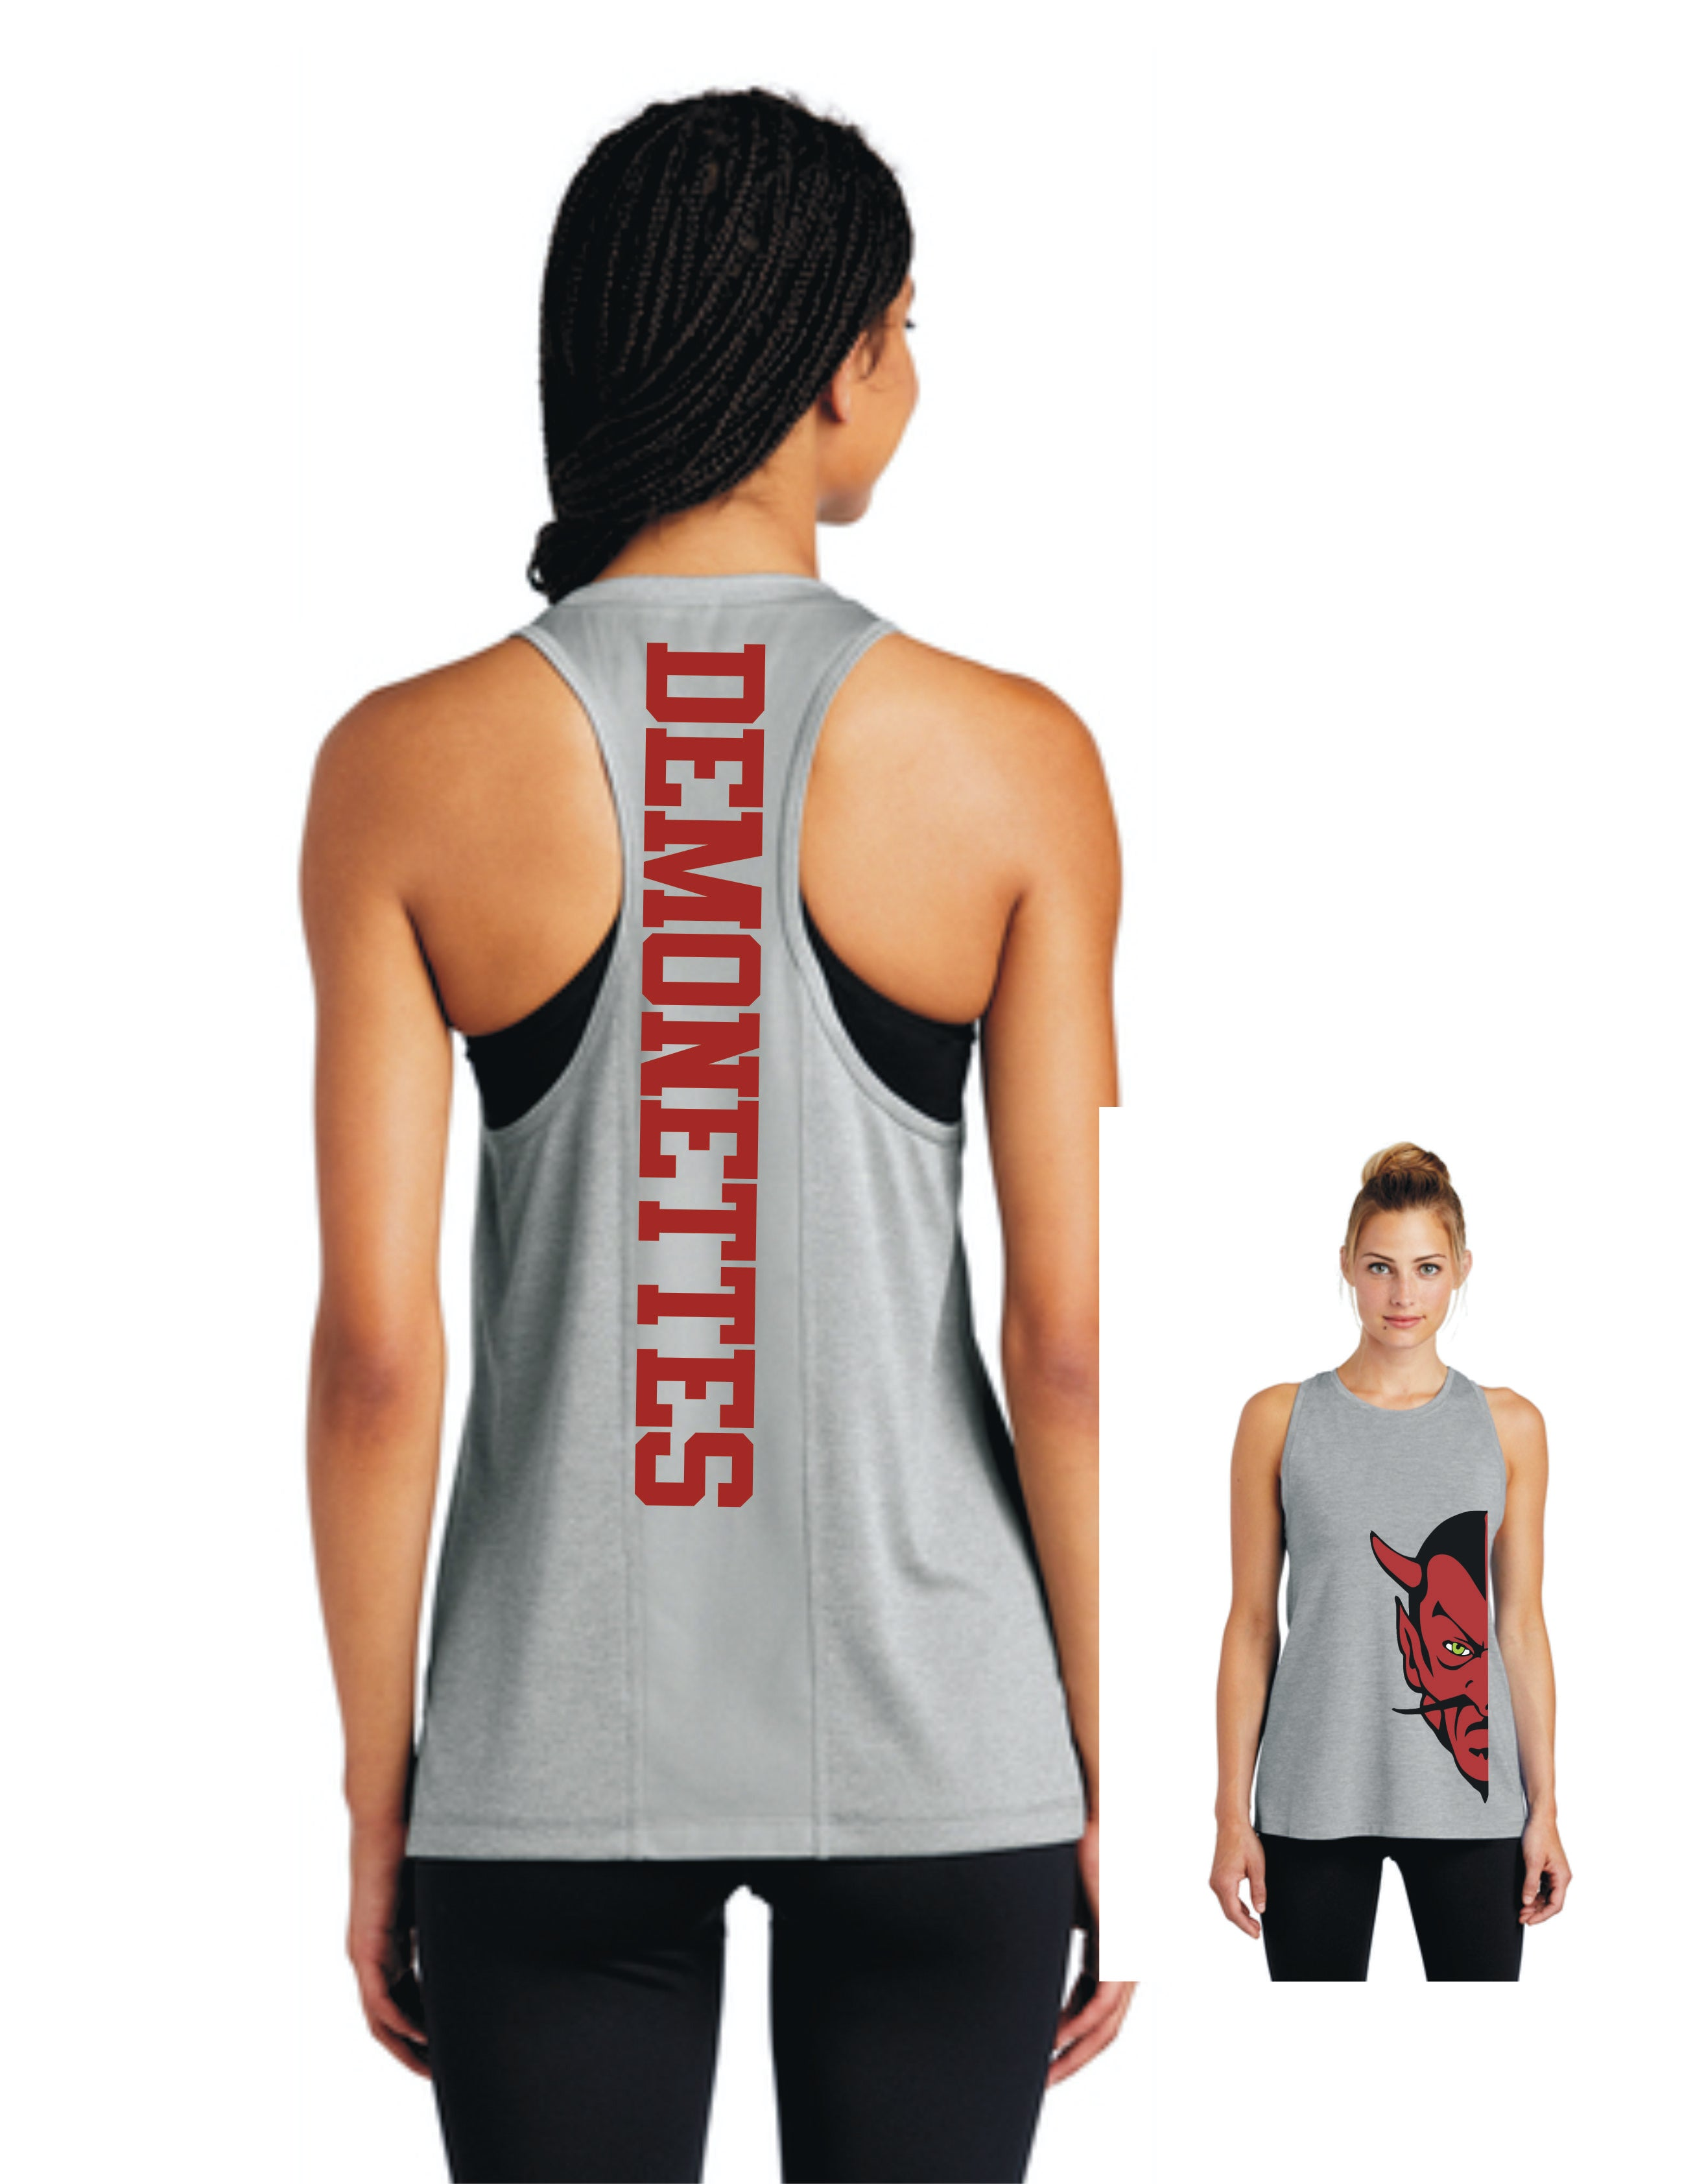 Sports tank top, Graphic sports tank